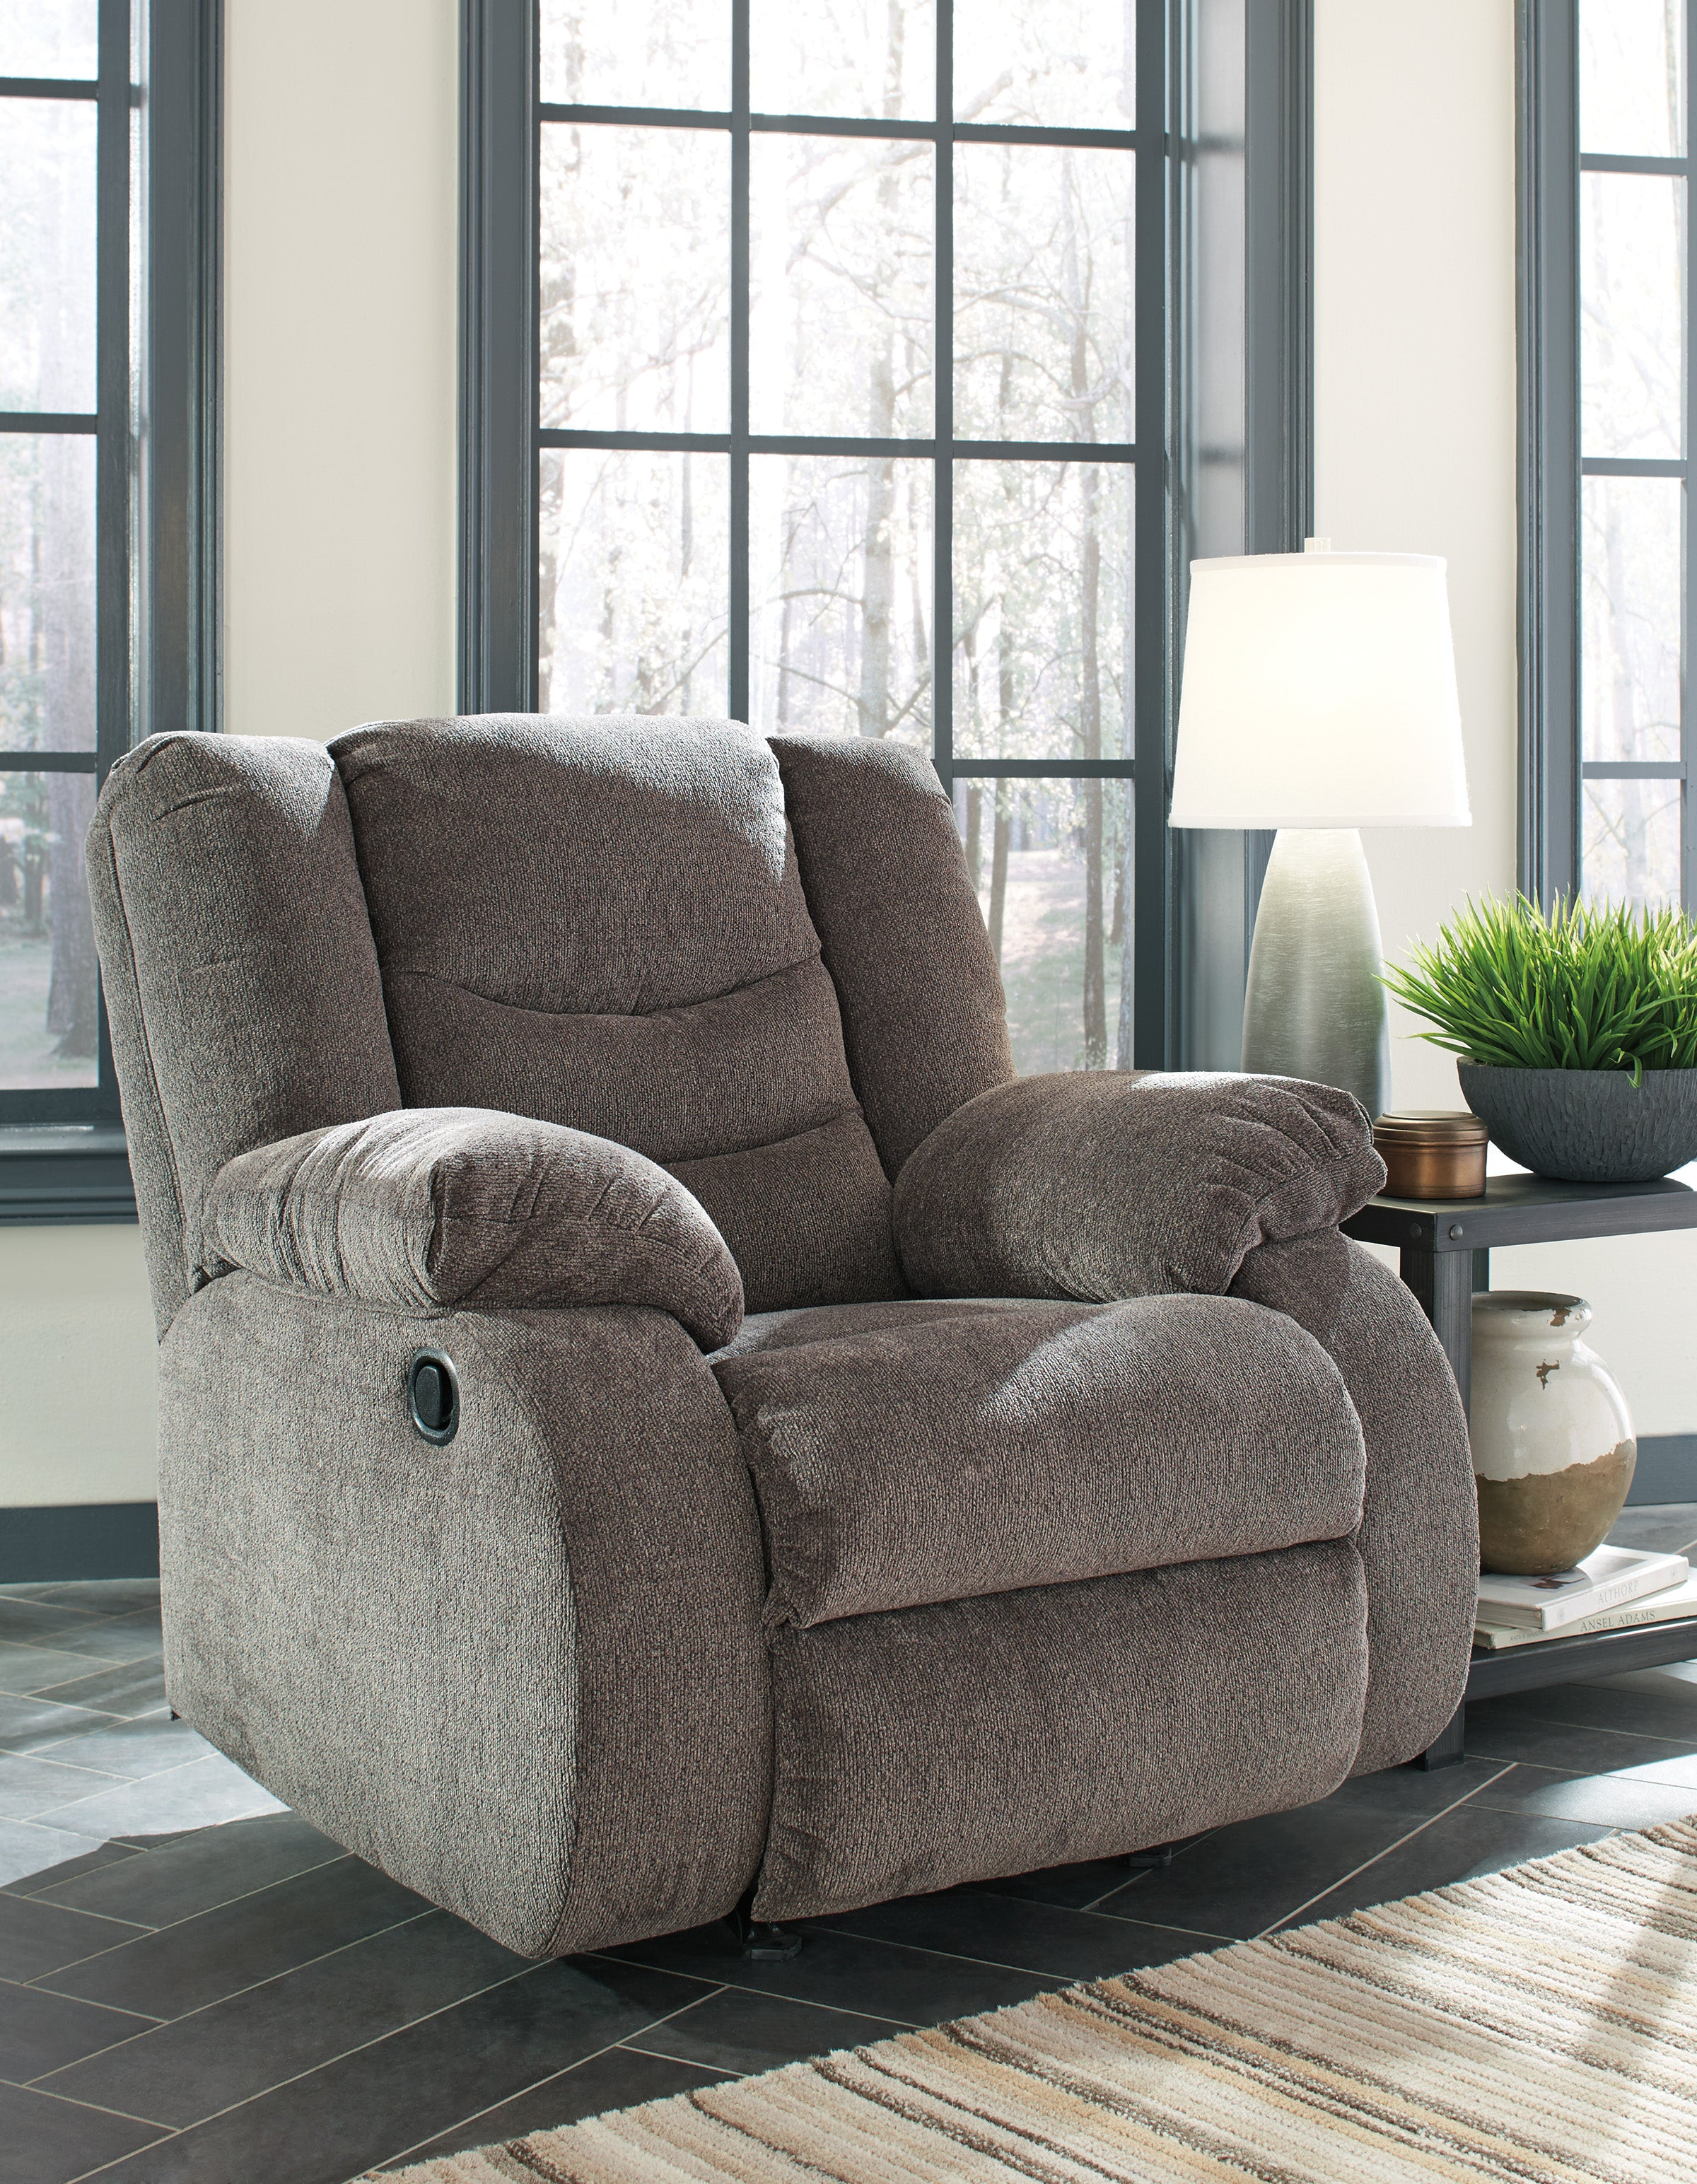 Fauteuil inclinable Ashley Tulen